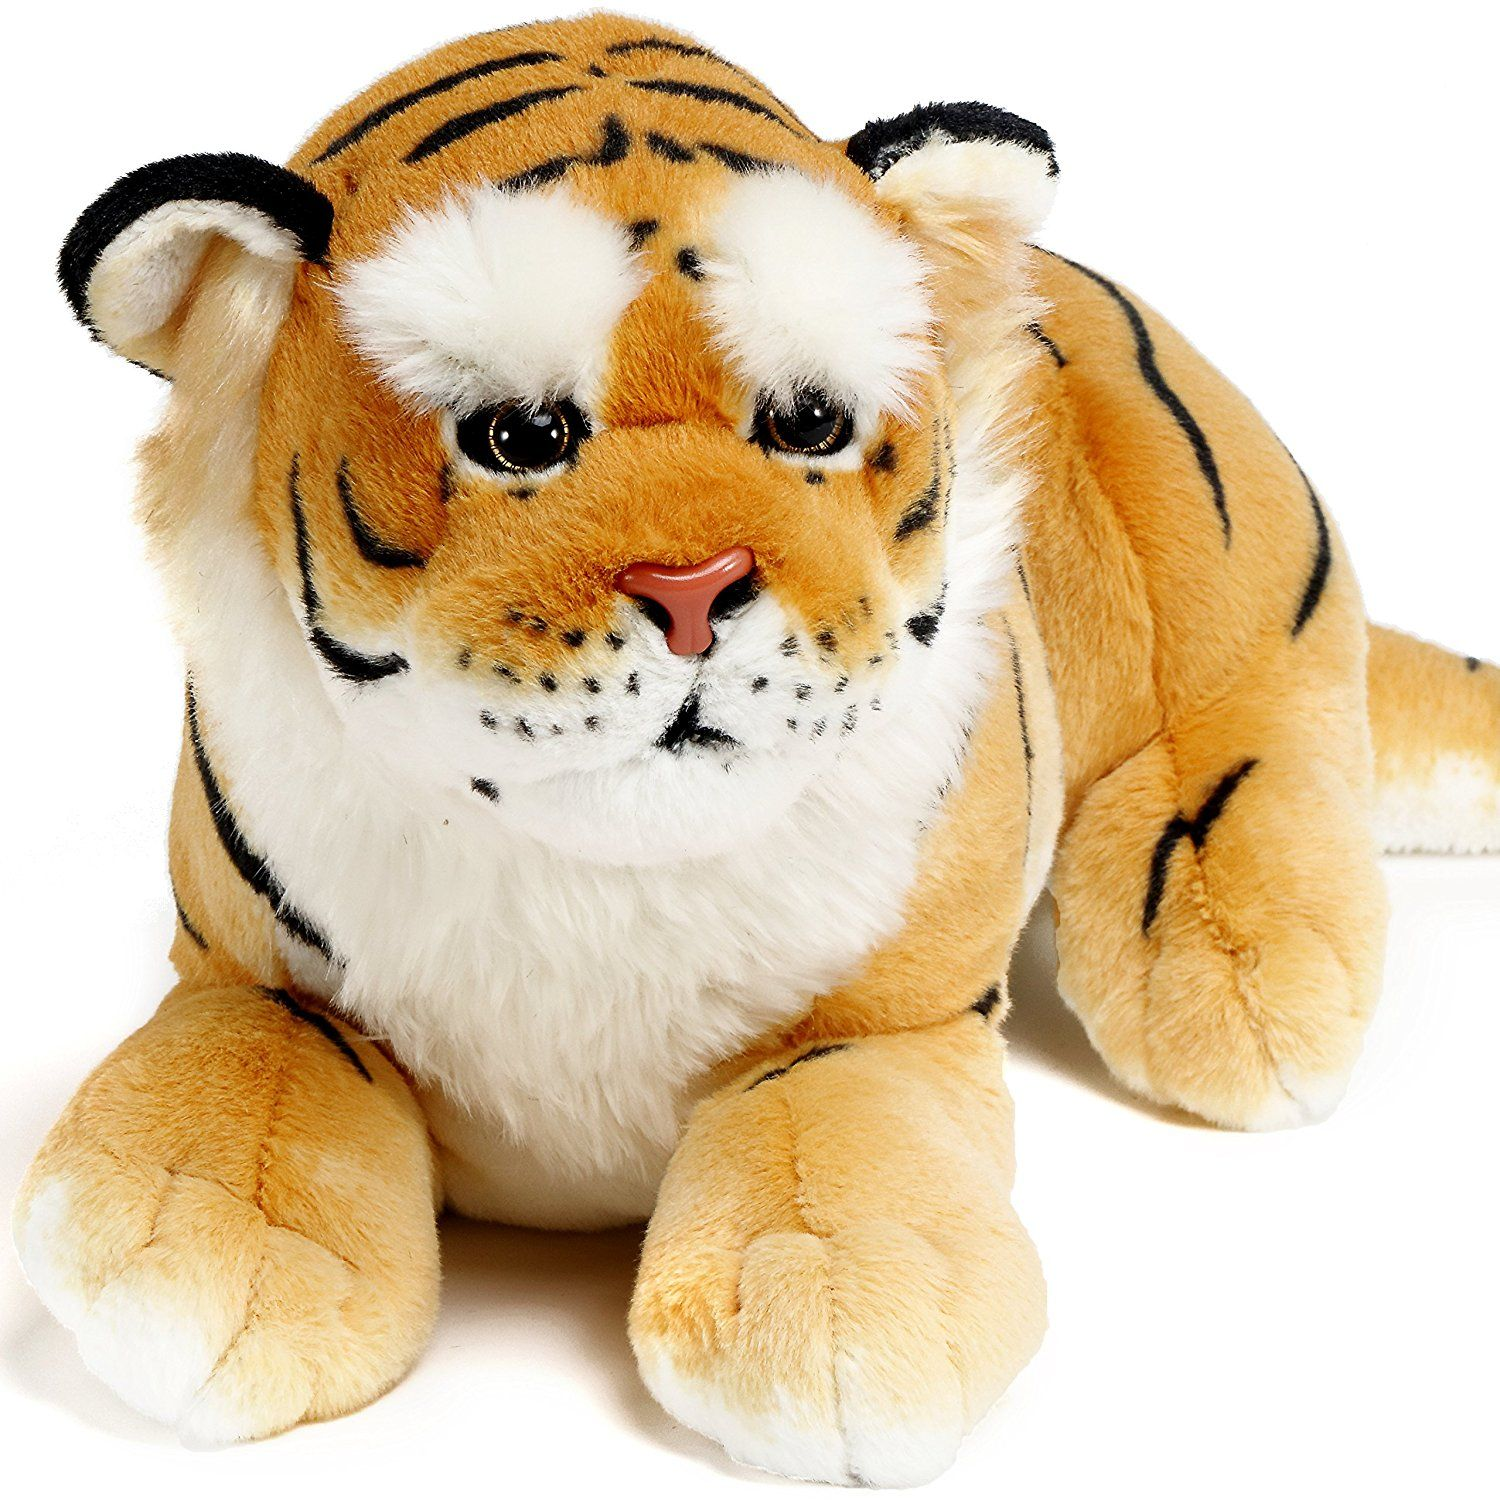 Amazon Com Aung The Burmese Tiger 27 Inch Large Stuffed Animal Plush By Viahart Toys Amp Games Tiger Stuffed Animal Large Stuffed Animals Animals [ 1500 x 1500 Pixel ]